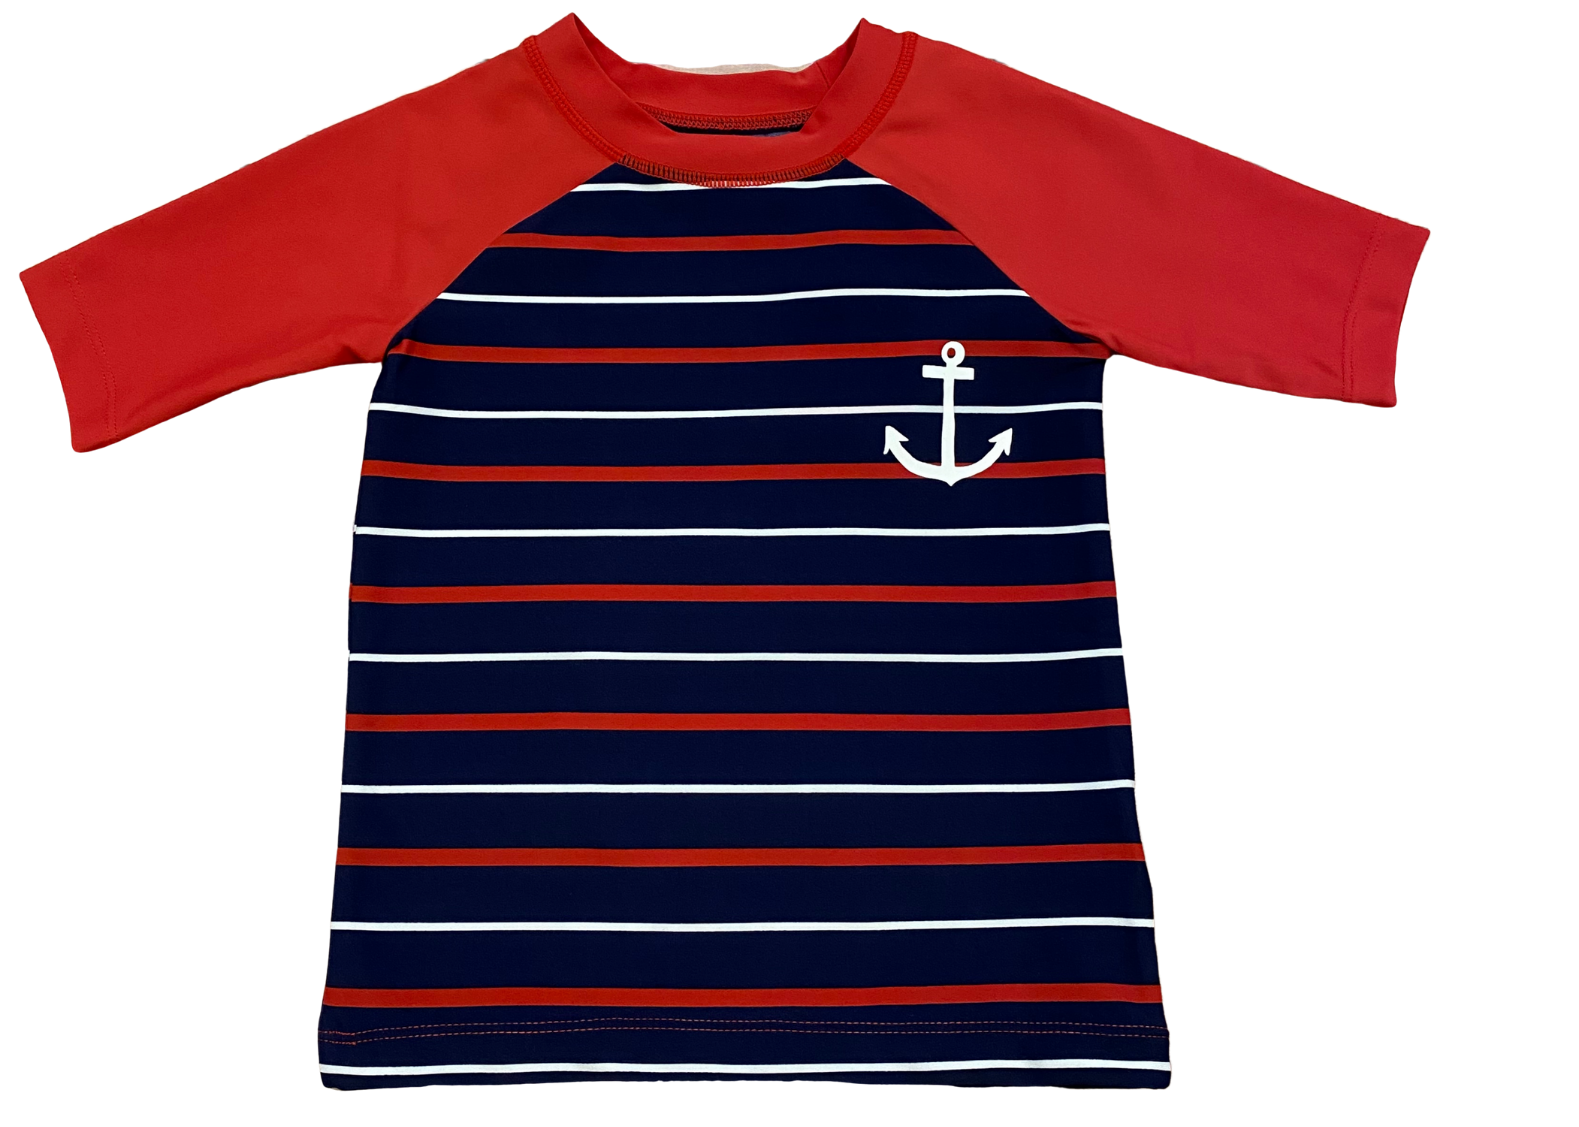 Navy and Red Rashguard